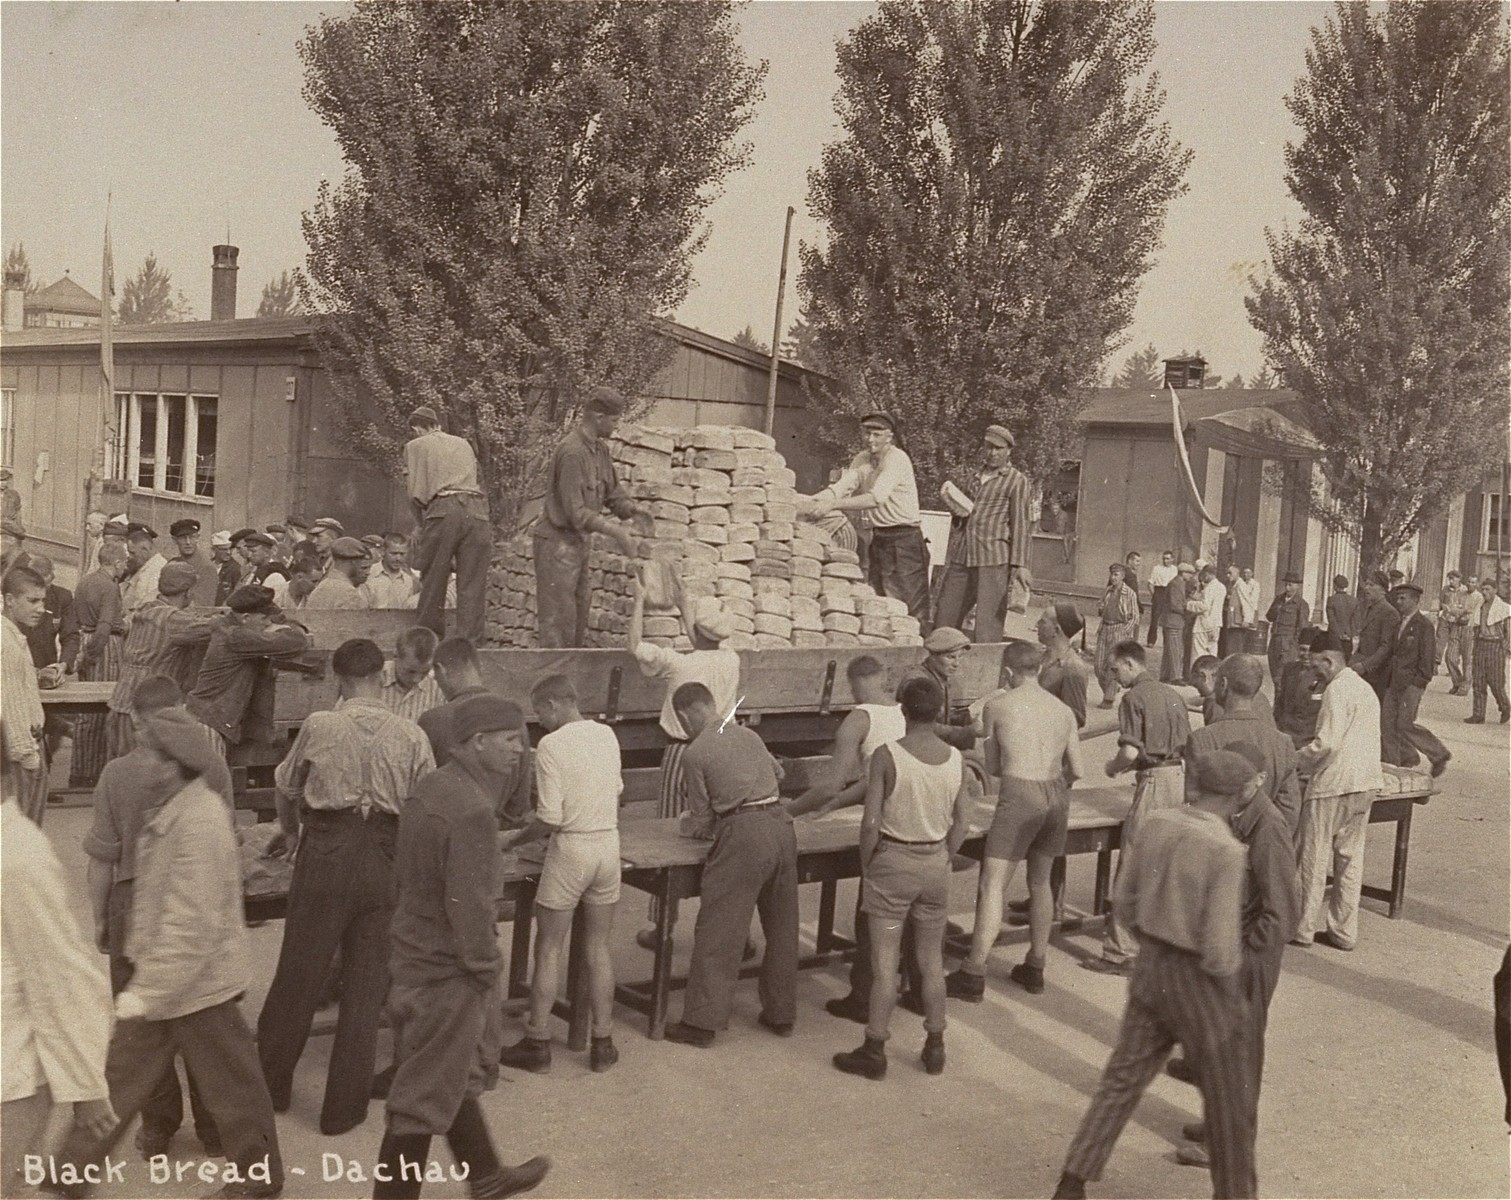 Survivors in Dachau distribute bread to their comrades after liberation.